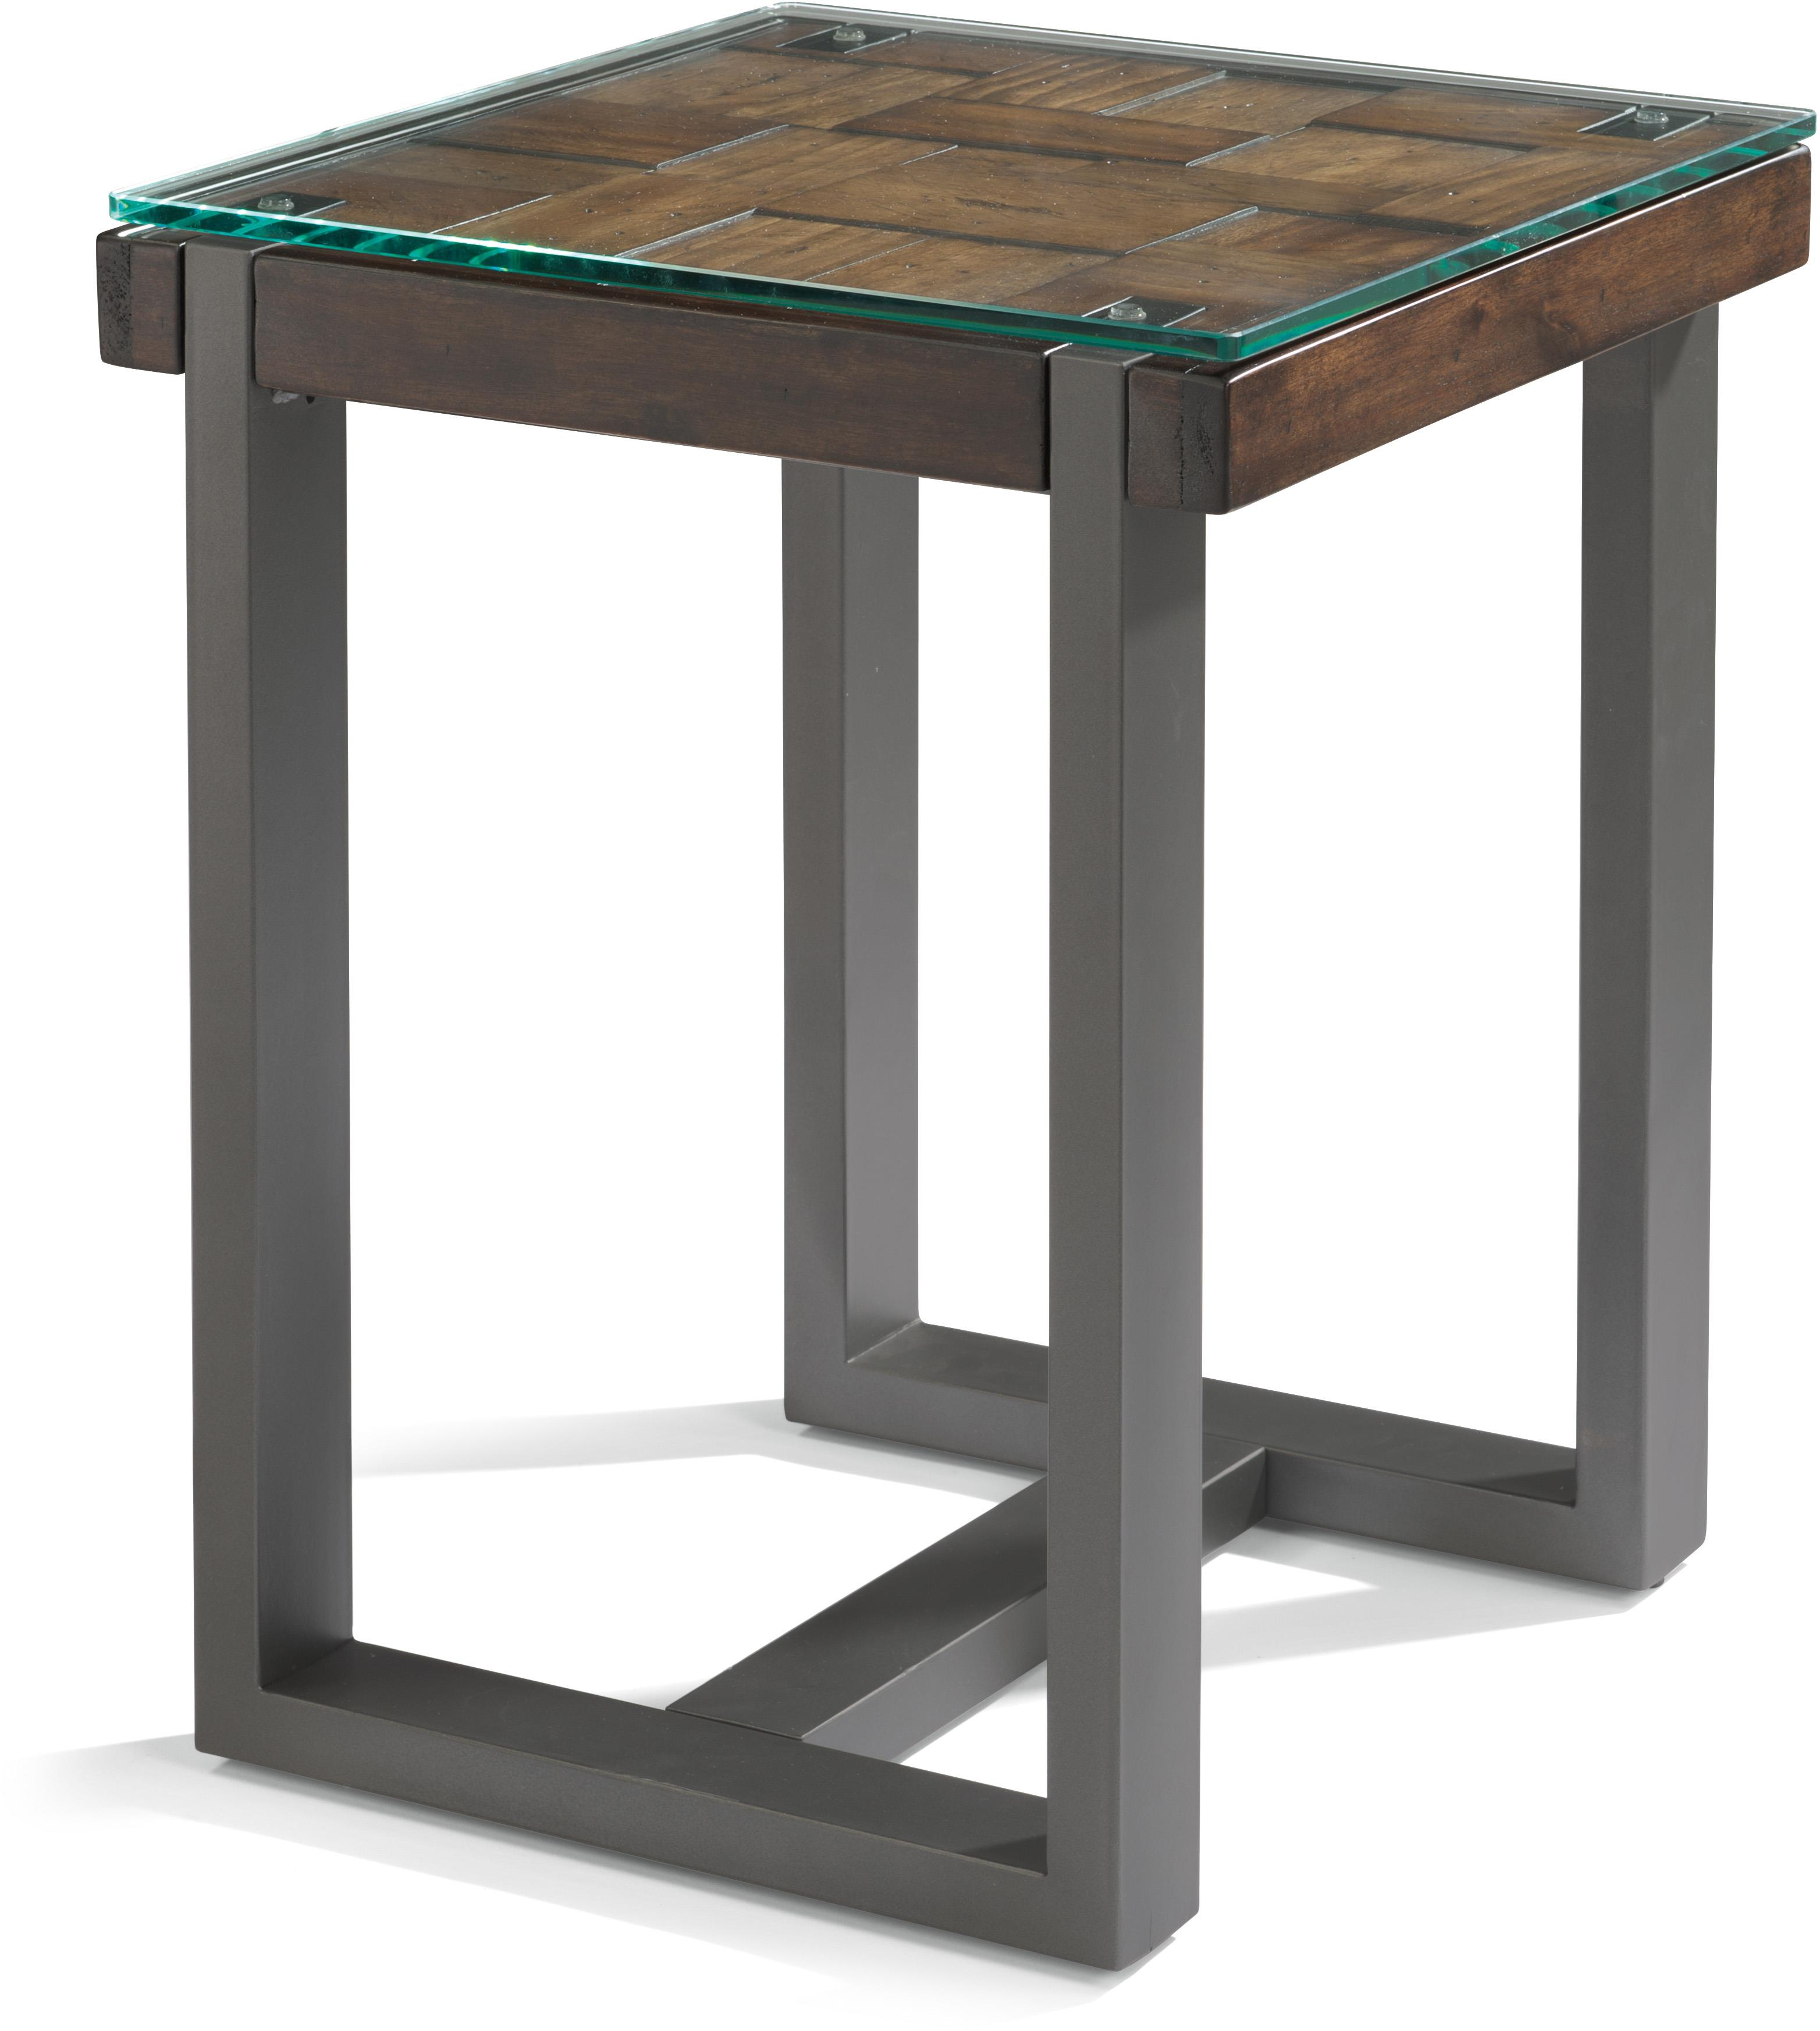 Flexsteel Patchwork Chair Side Table  - Item Number: W1415-07